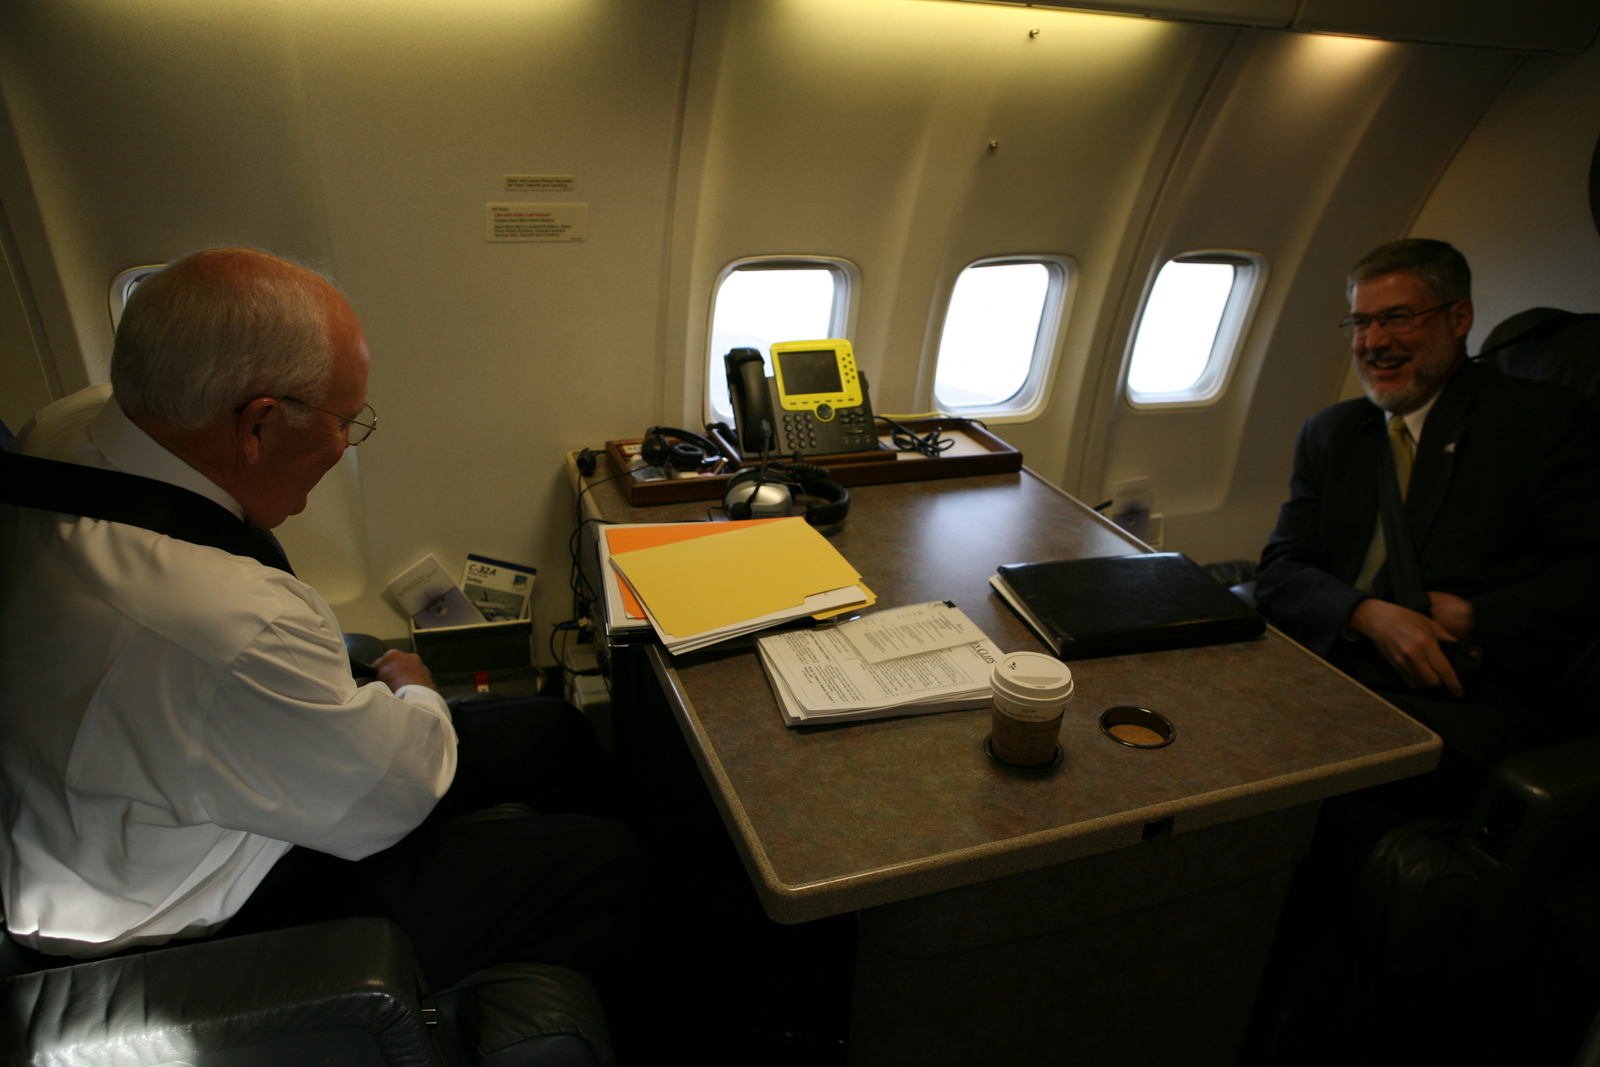 Vice President Cheney Talks with David Addington Aboard Air Force Two